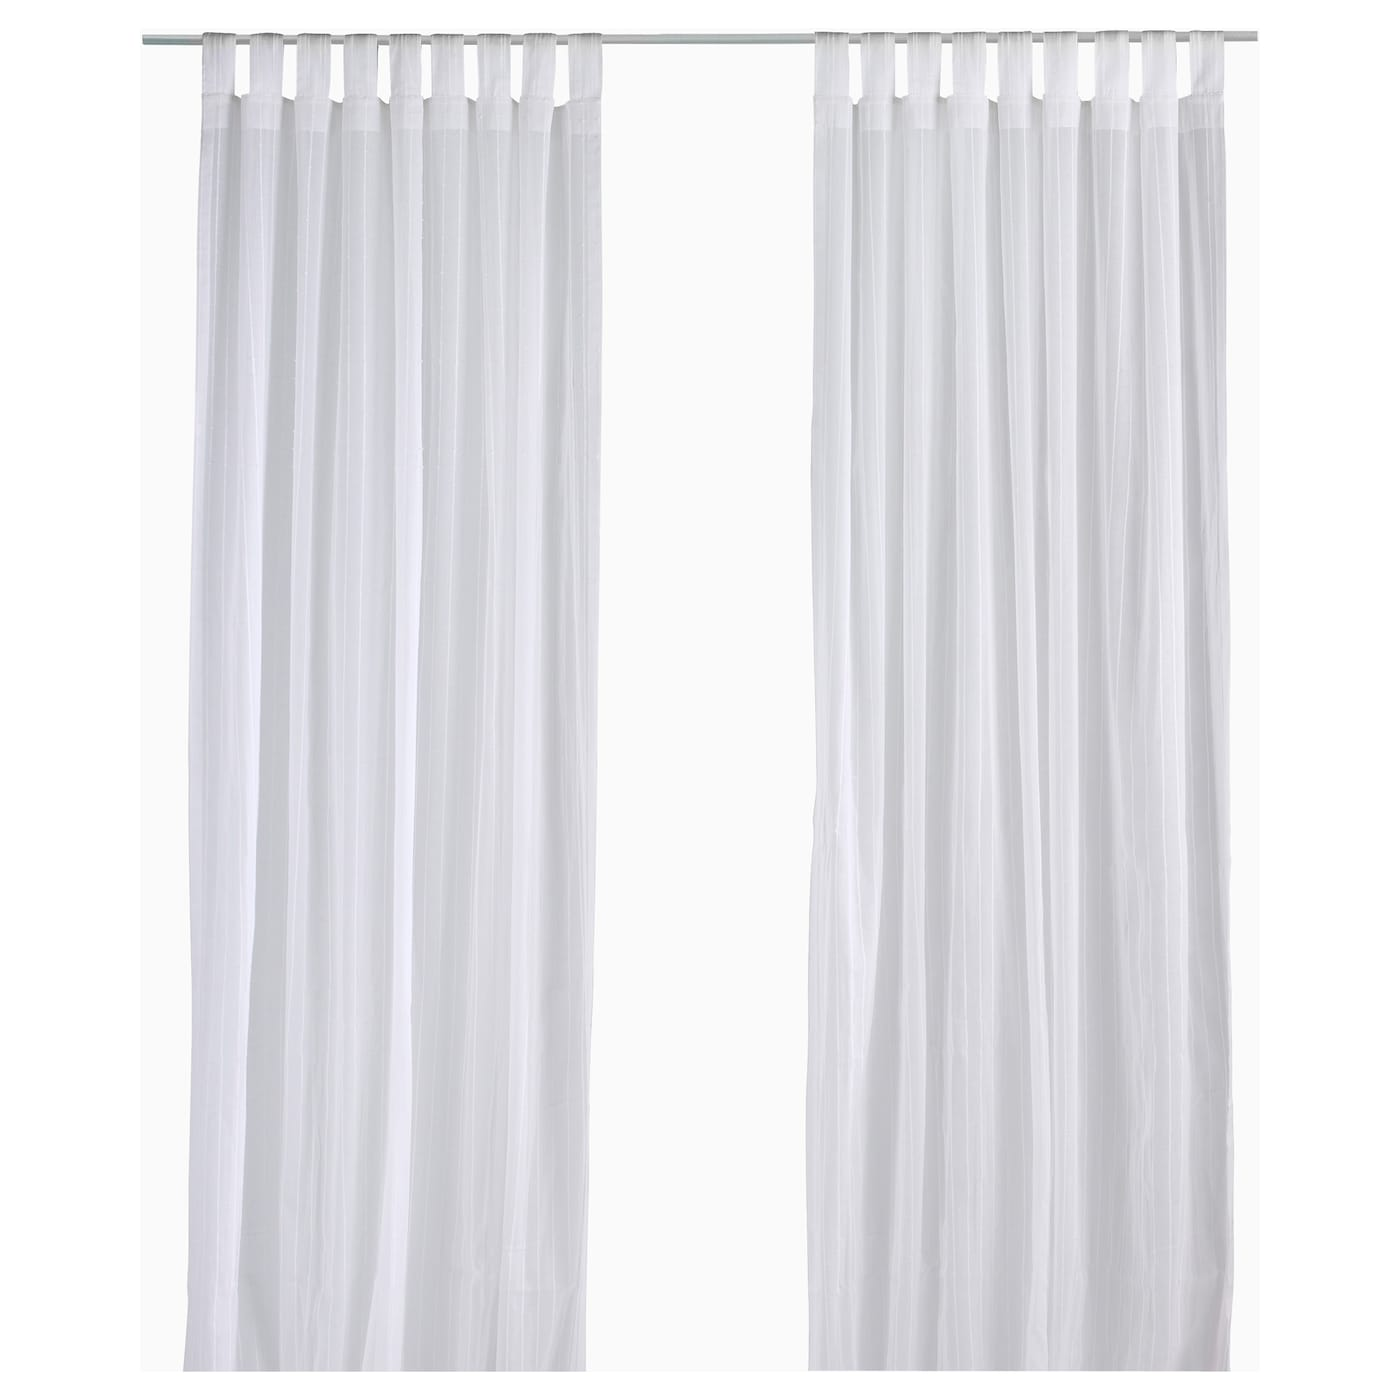 Matilda sheer curtains 1 pair white 140x250 cm ikea for White curtains ikea